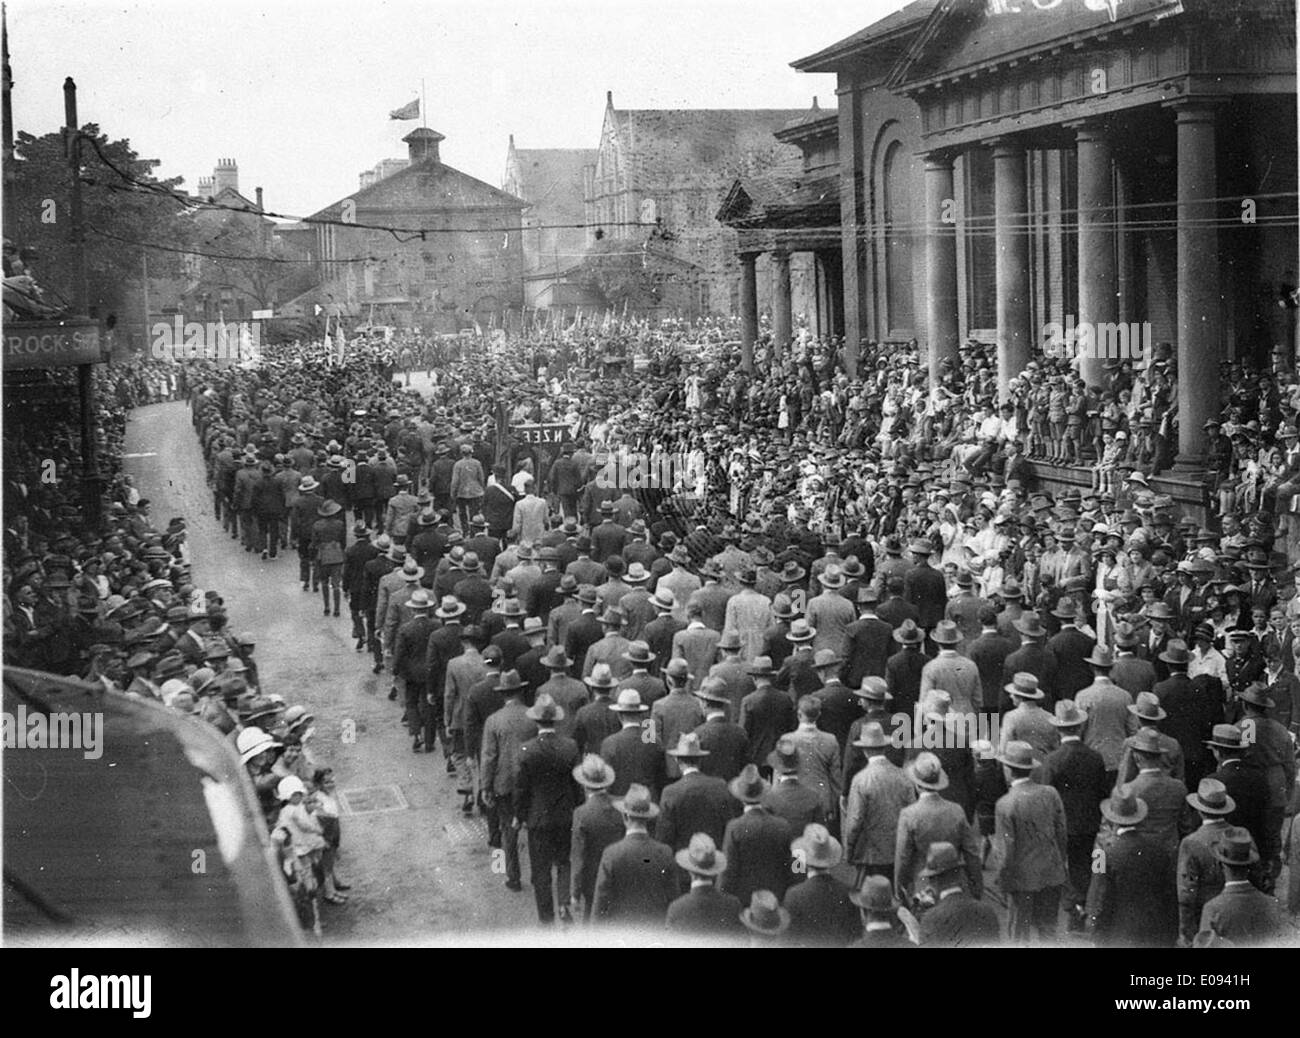 Marching into Queen's Square, c. 1931, by Sam & Ted Hoood Stock Photo